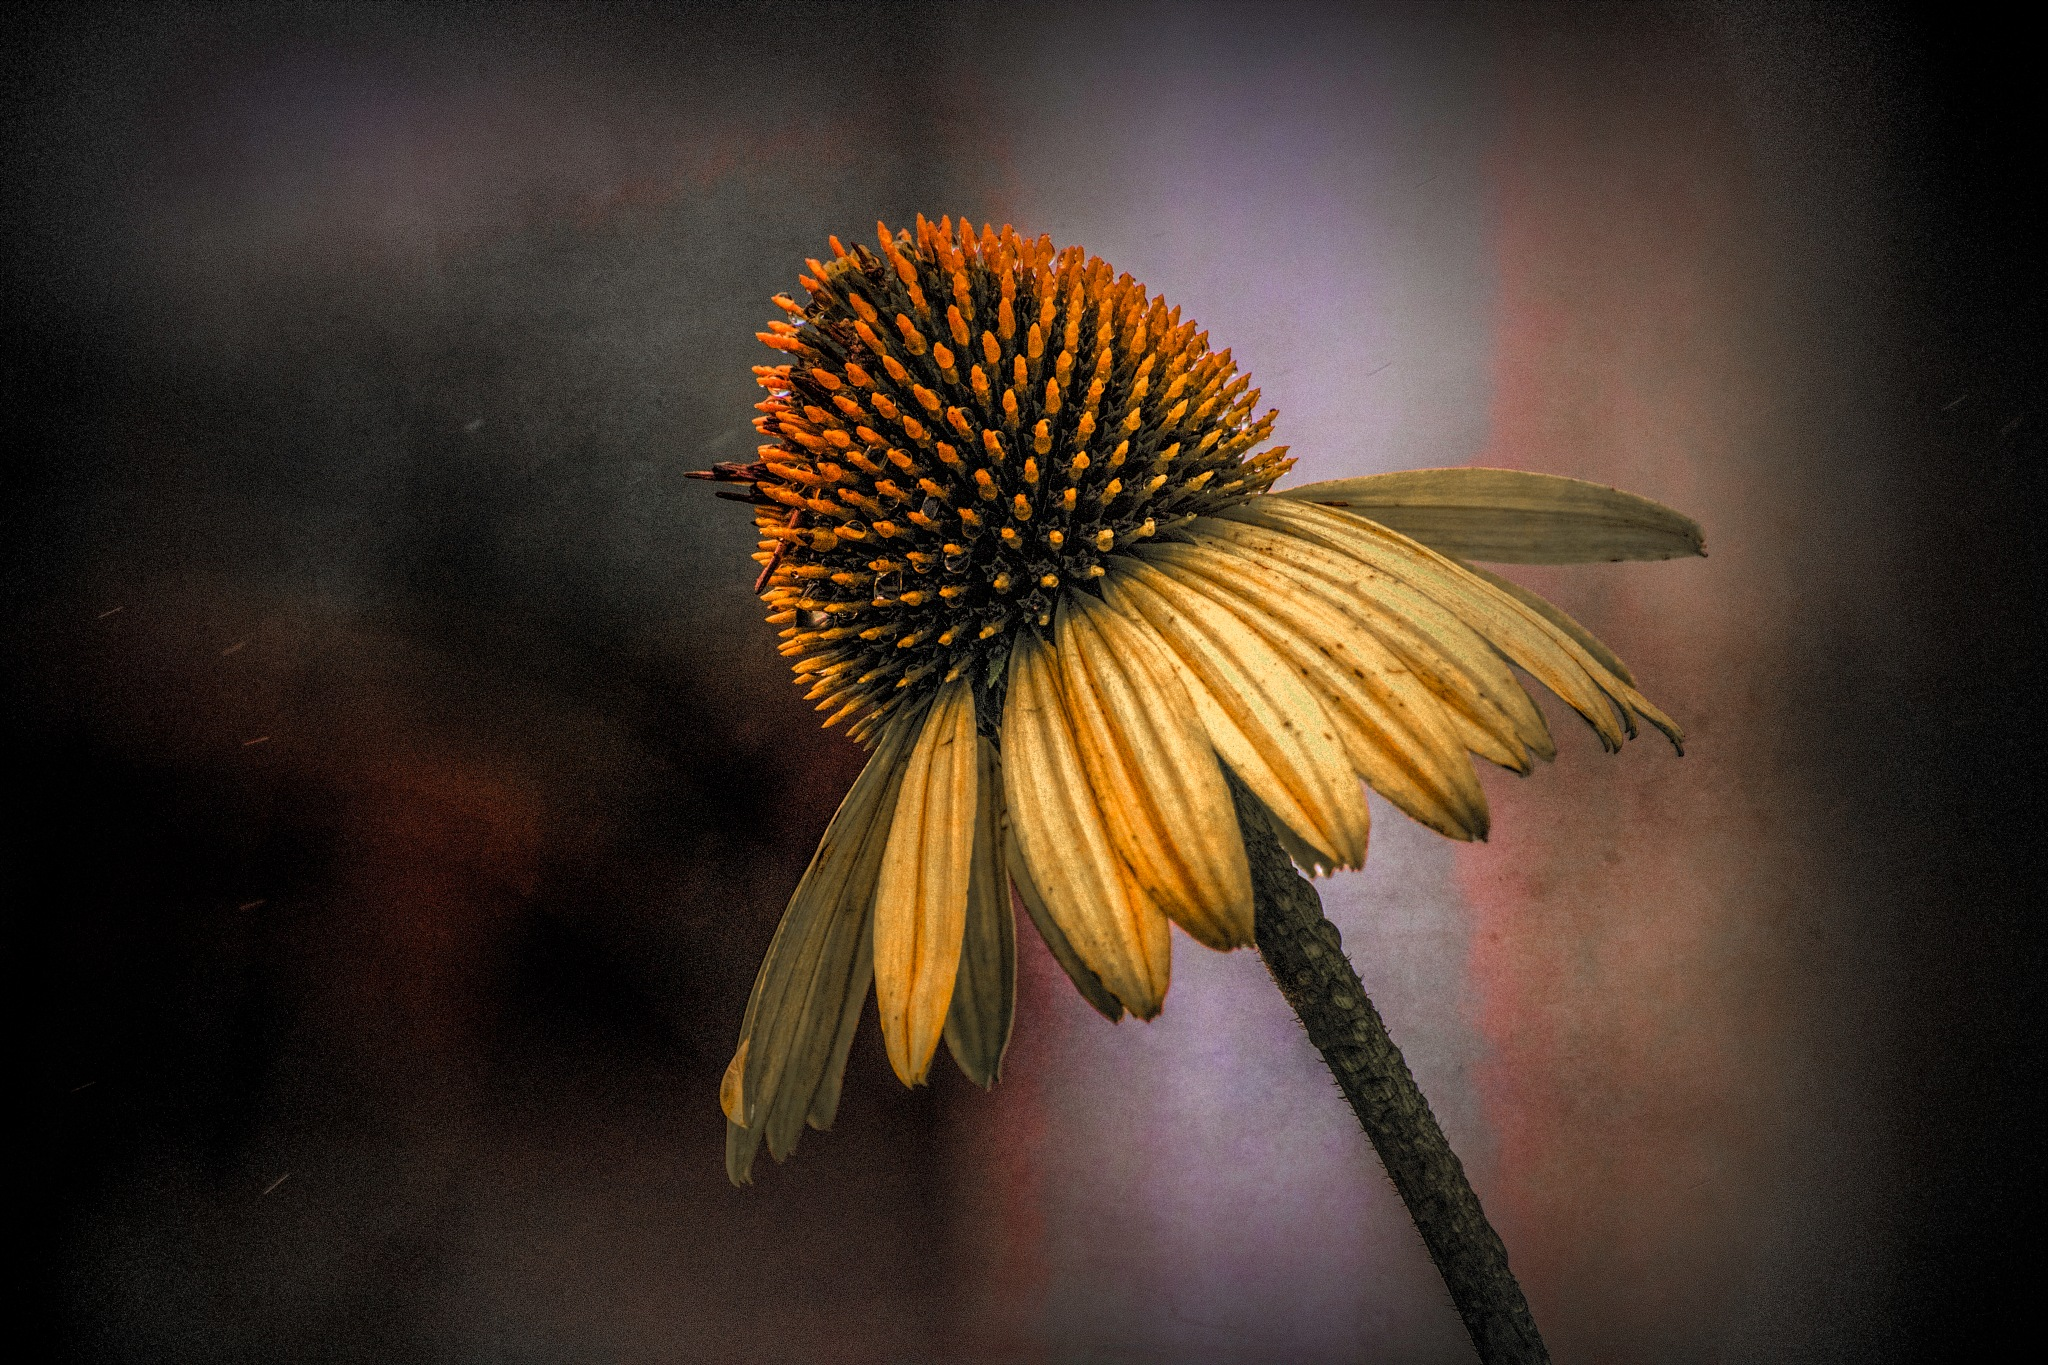 Flower 9-2-15 by JohnEllingson